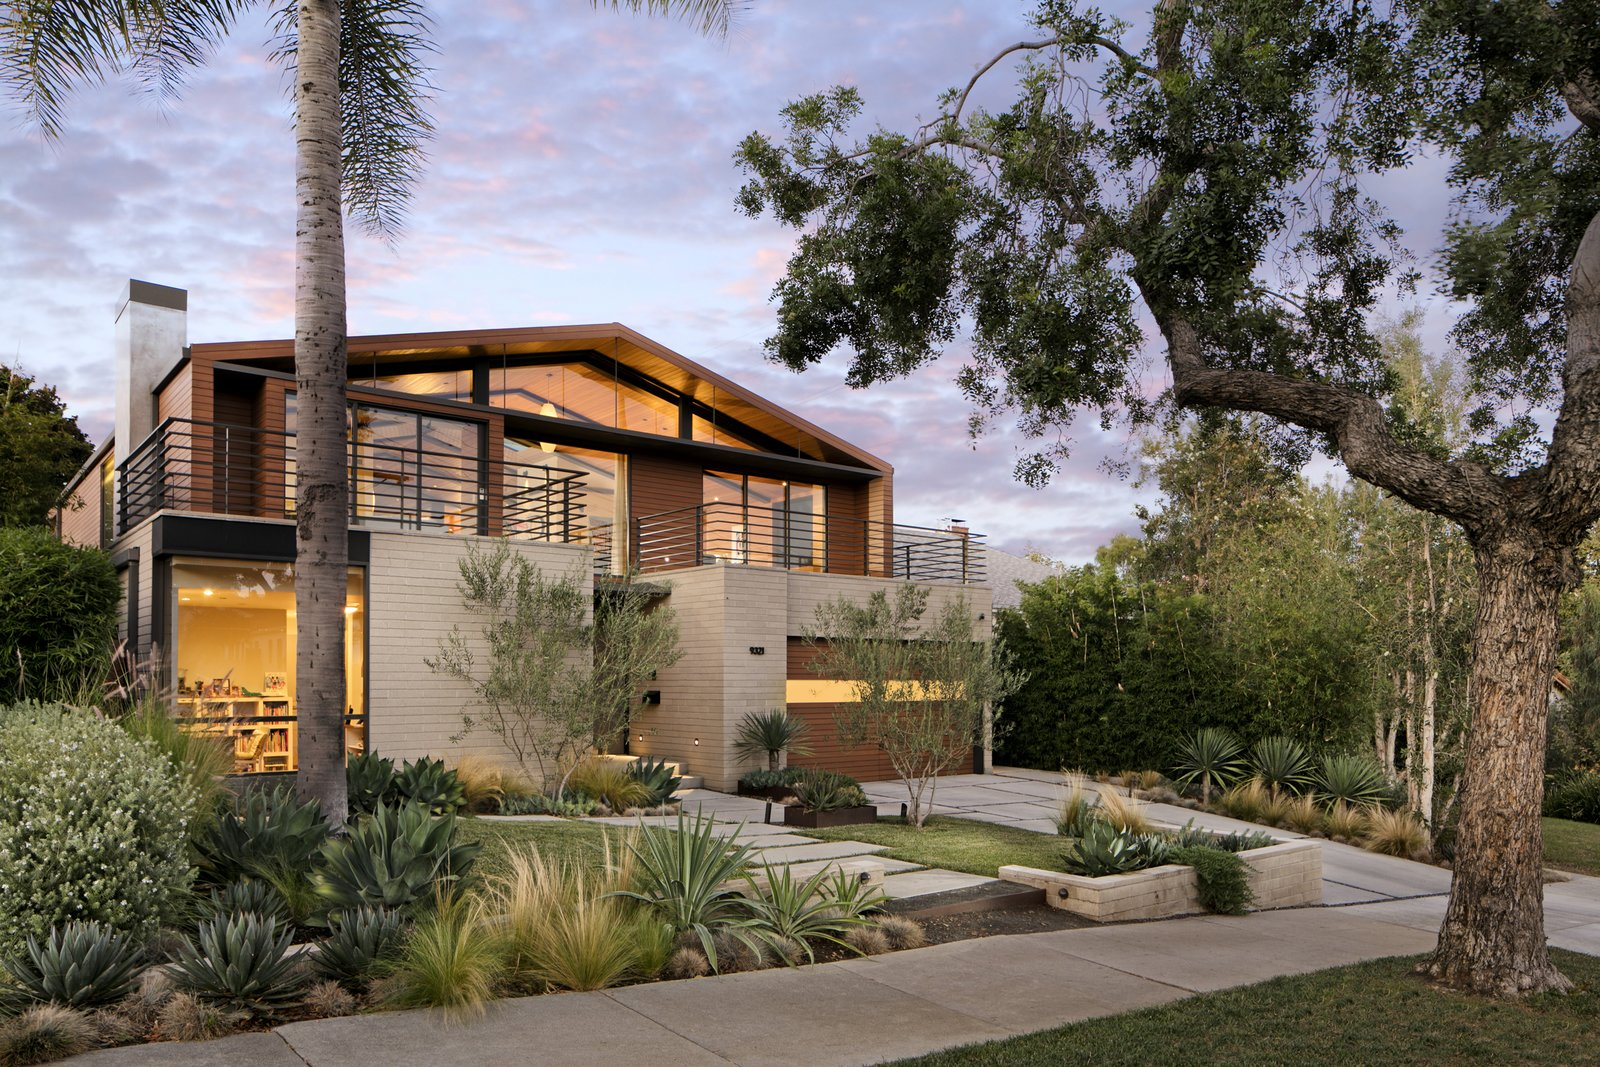 The home is motivated by Mid-Century style, but also expresses a sense of California-cool.